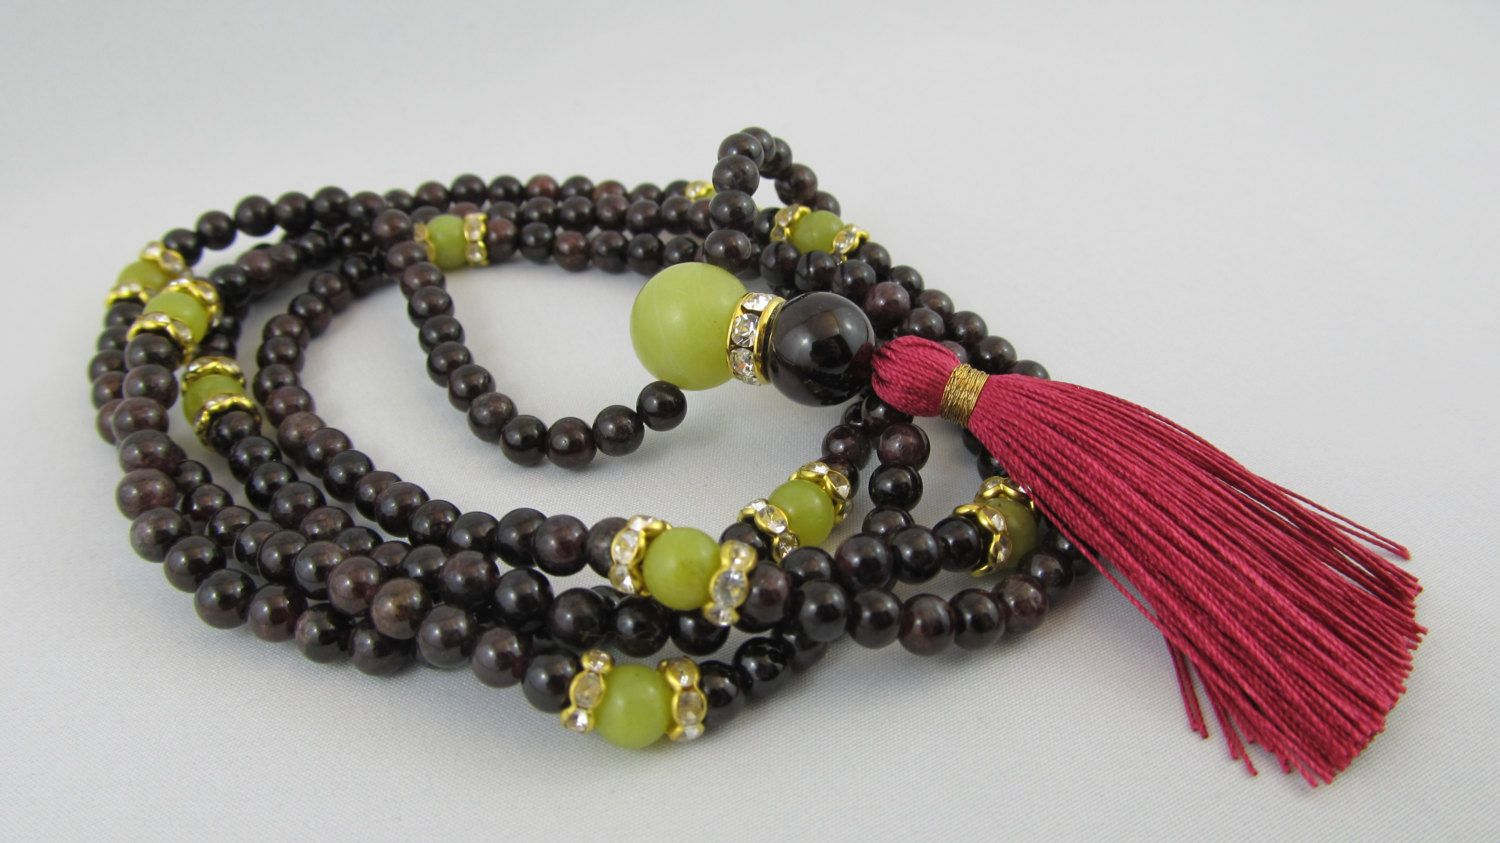 Ready to ship long tassel necklace in garnet and peridot serpentine - mala inspired necklace - One of a kind by Sphalie on Etsy